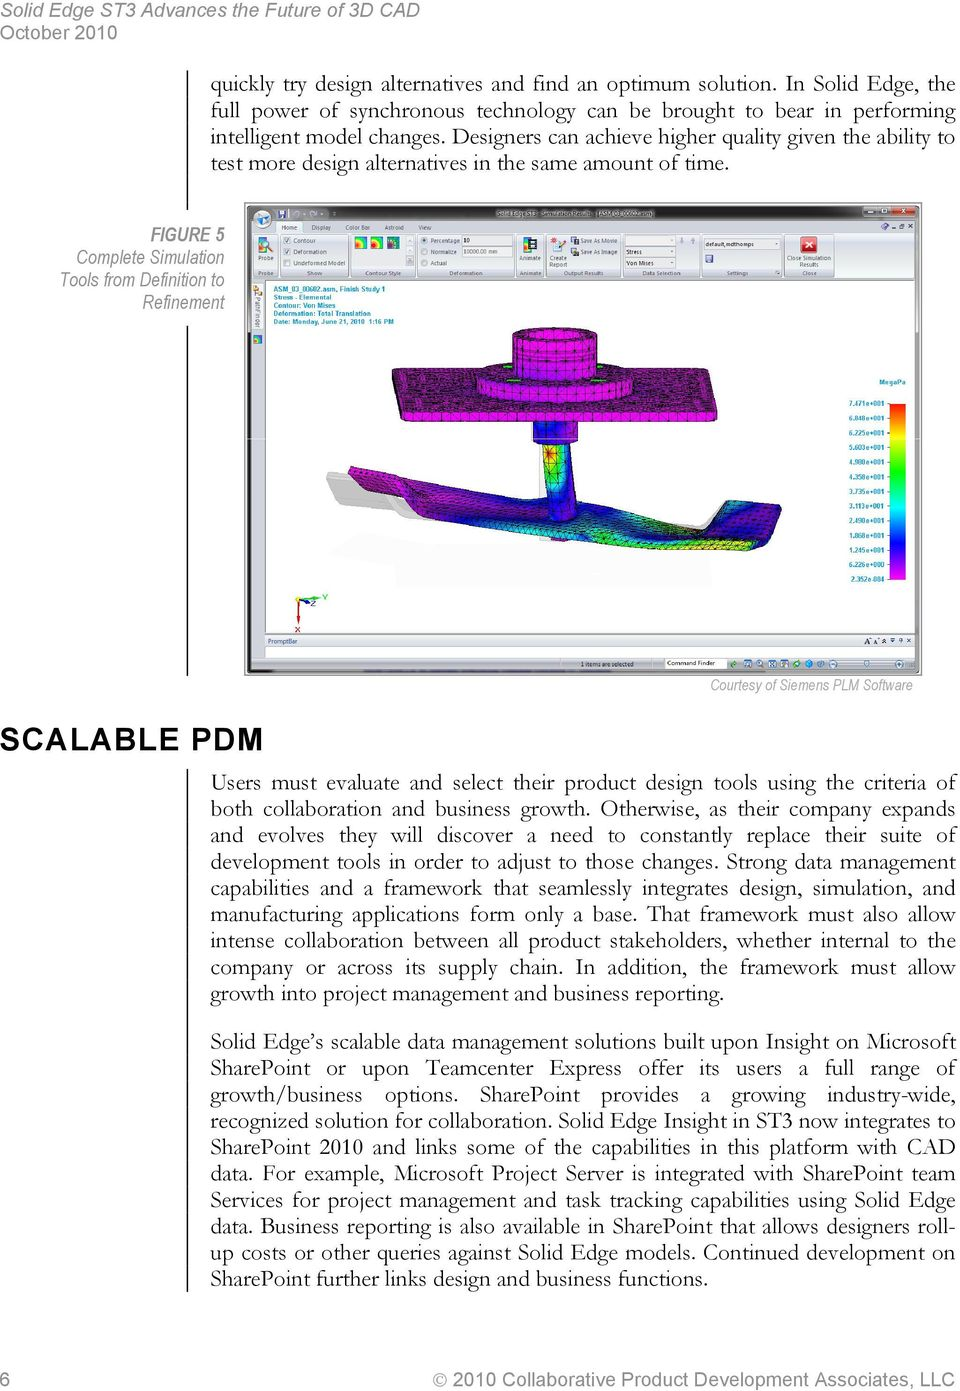 FIGURE 5 Complete Simulation Tools from Definition to Refinement SCALABLE PDM Users must evaluate and select their product design tools using the criteria of both collaboration and business growth.